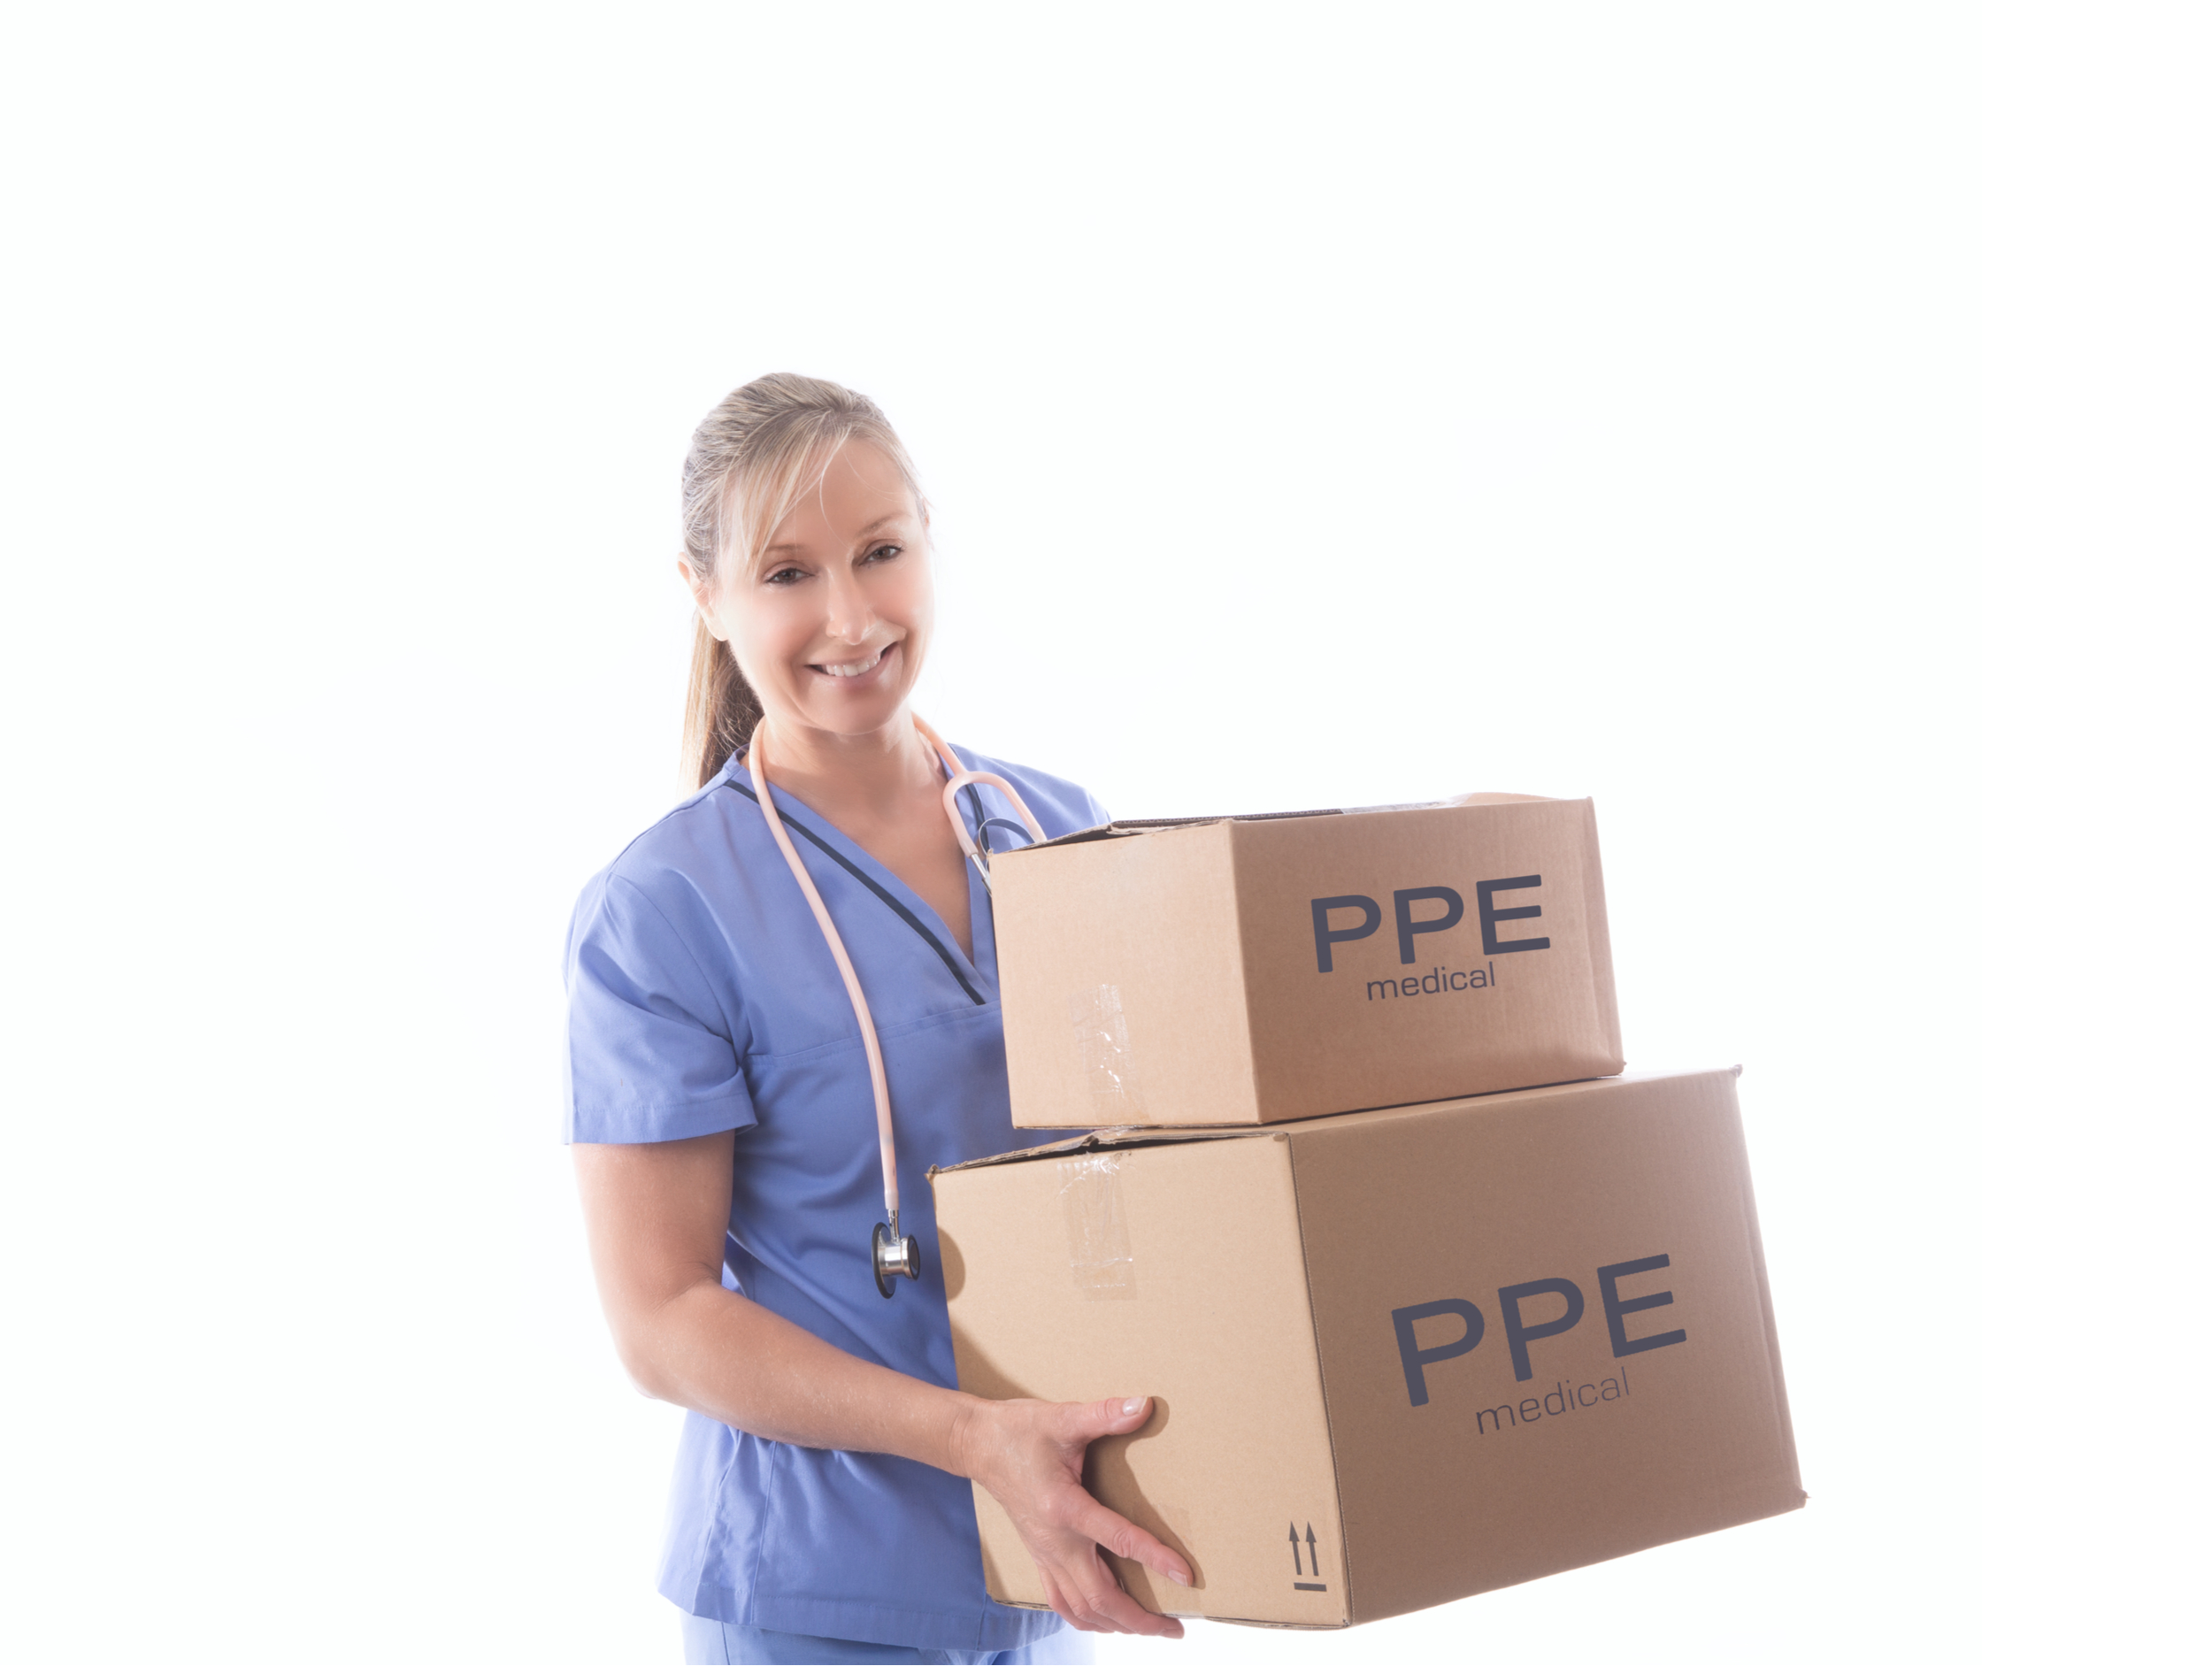 Where to Purchase PPE Products